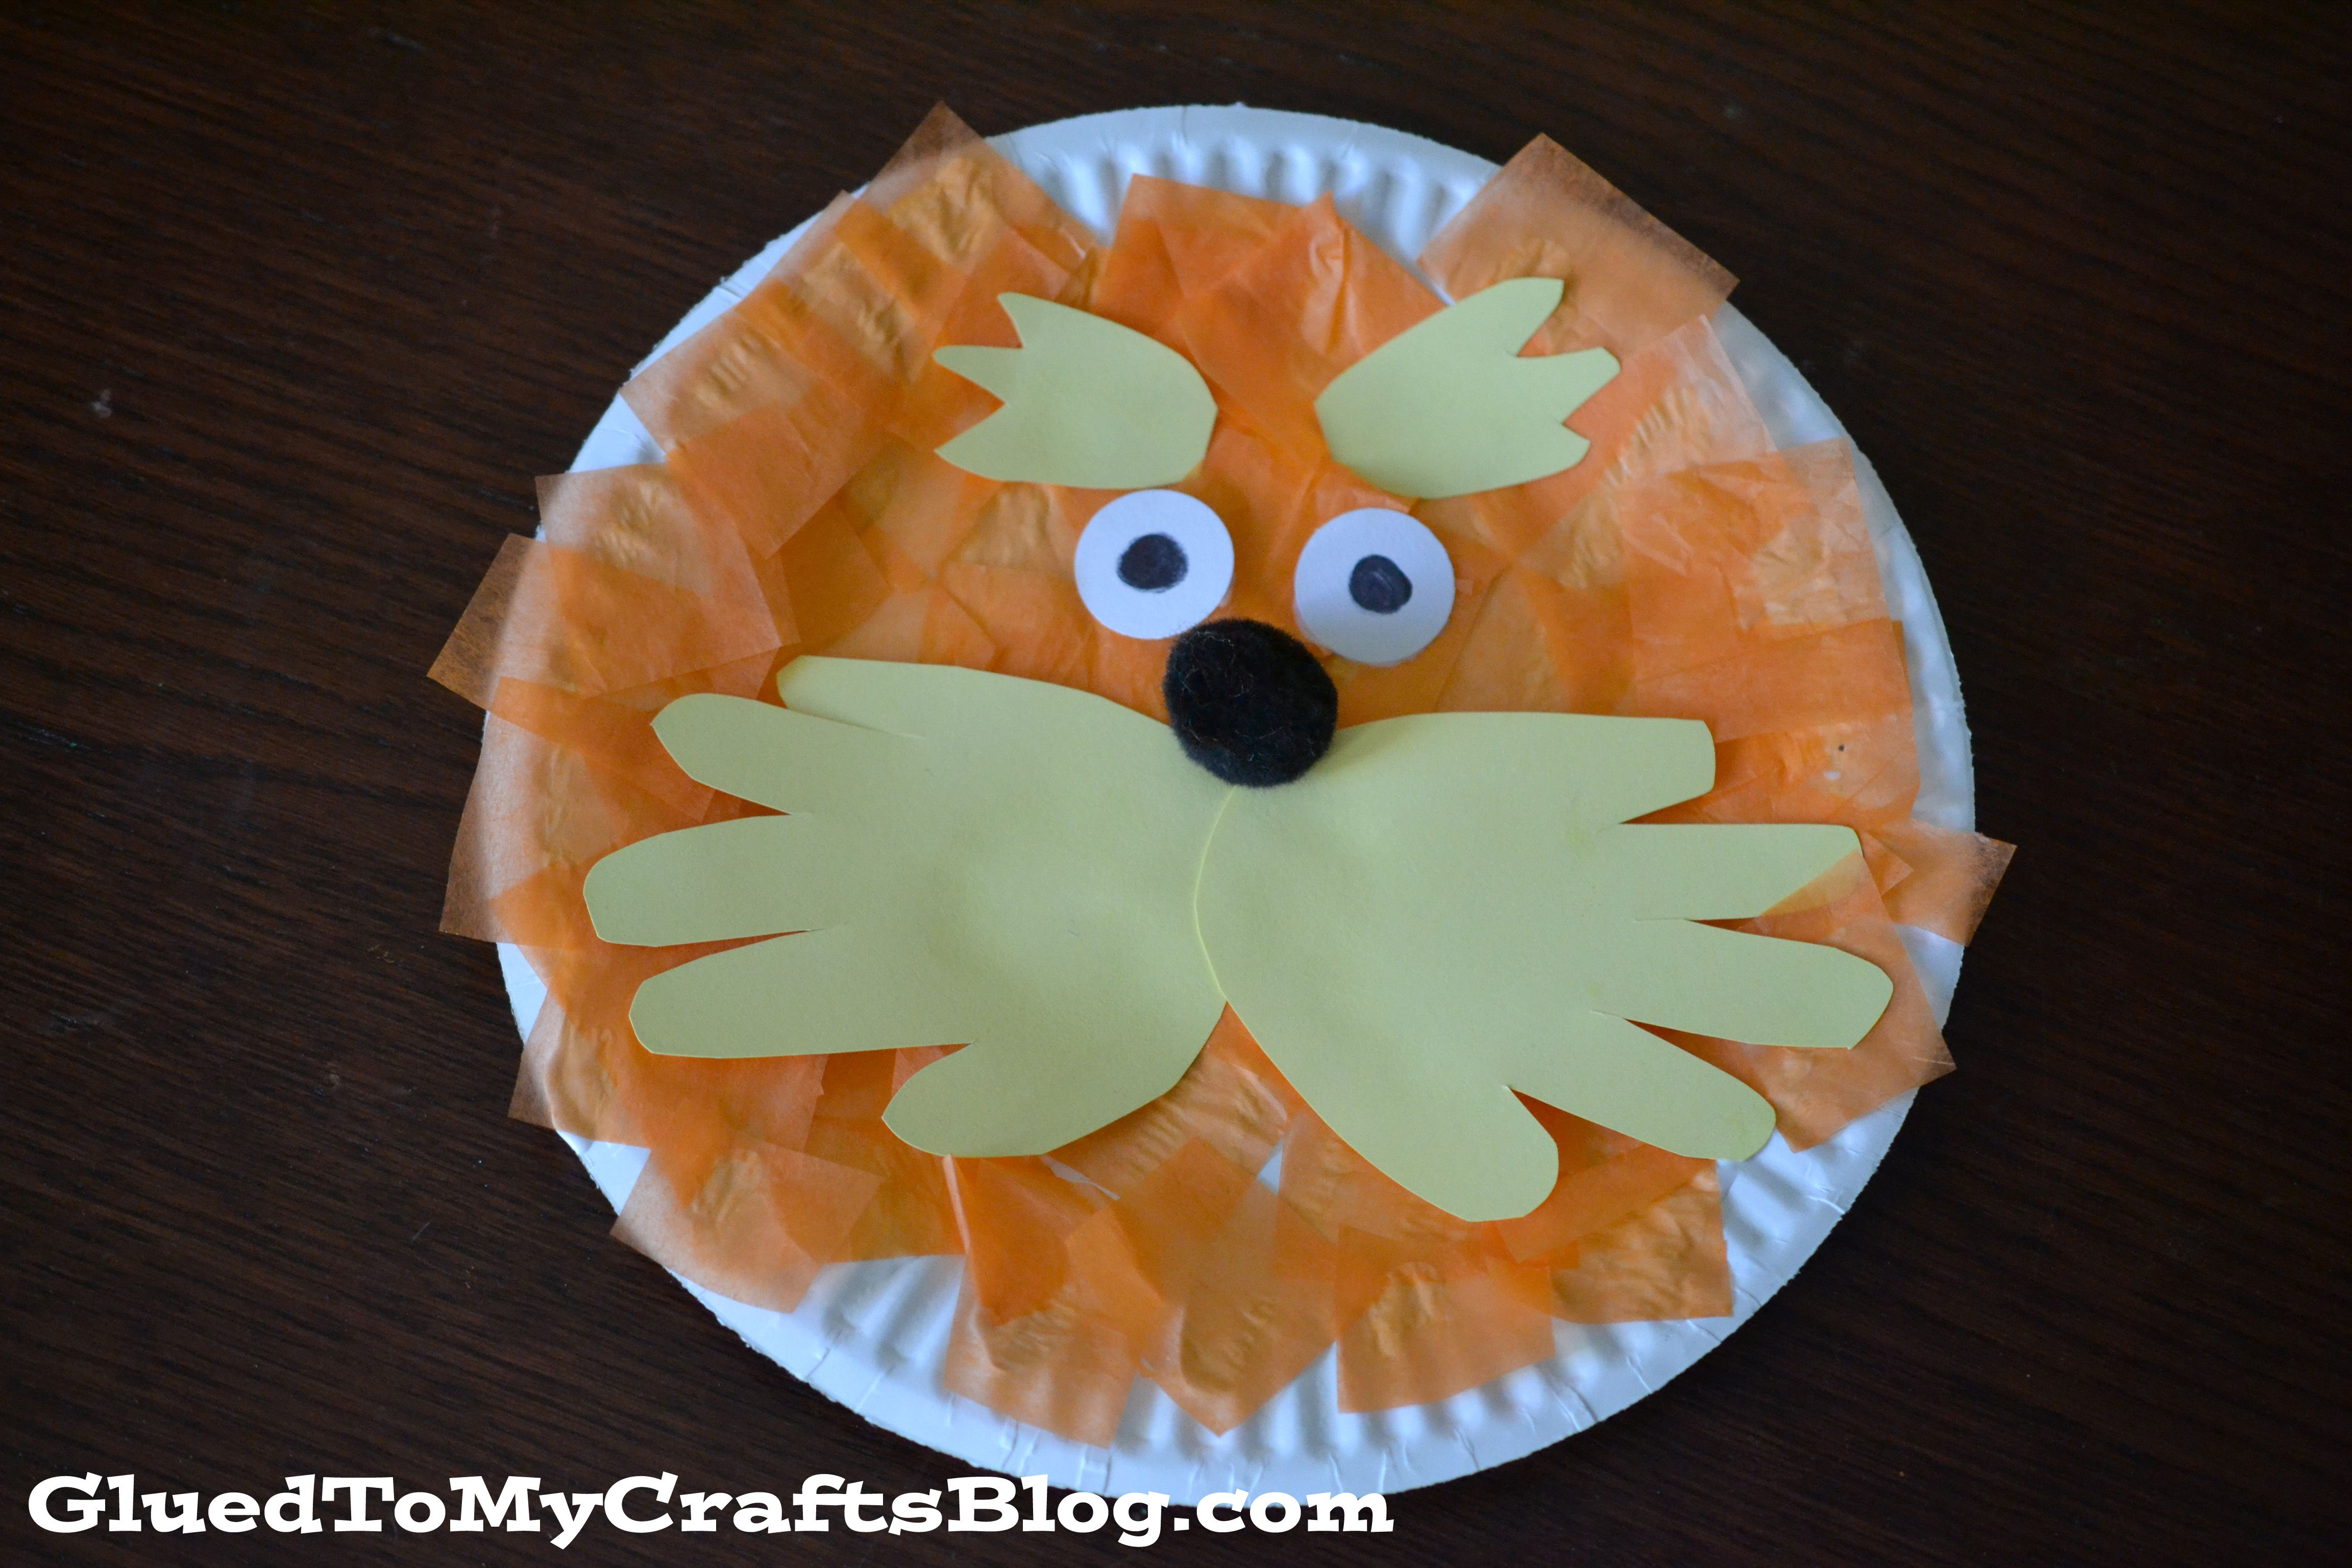 50 Dr Seuss Crafts Quick And Easy